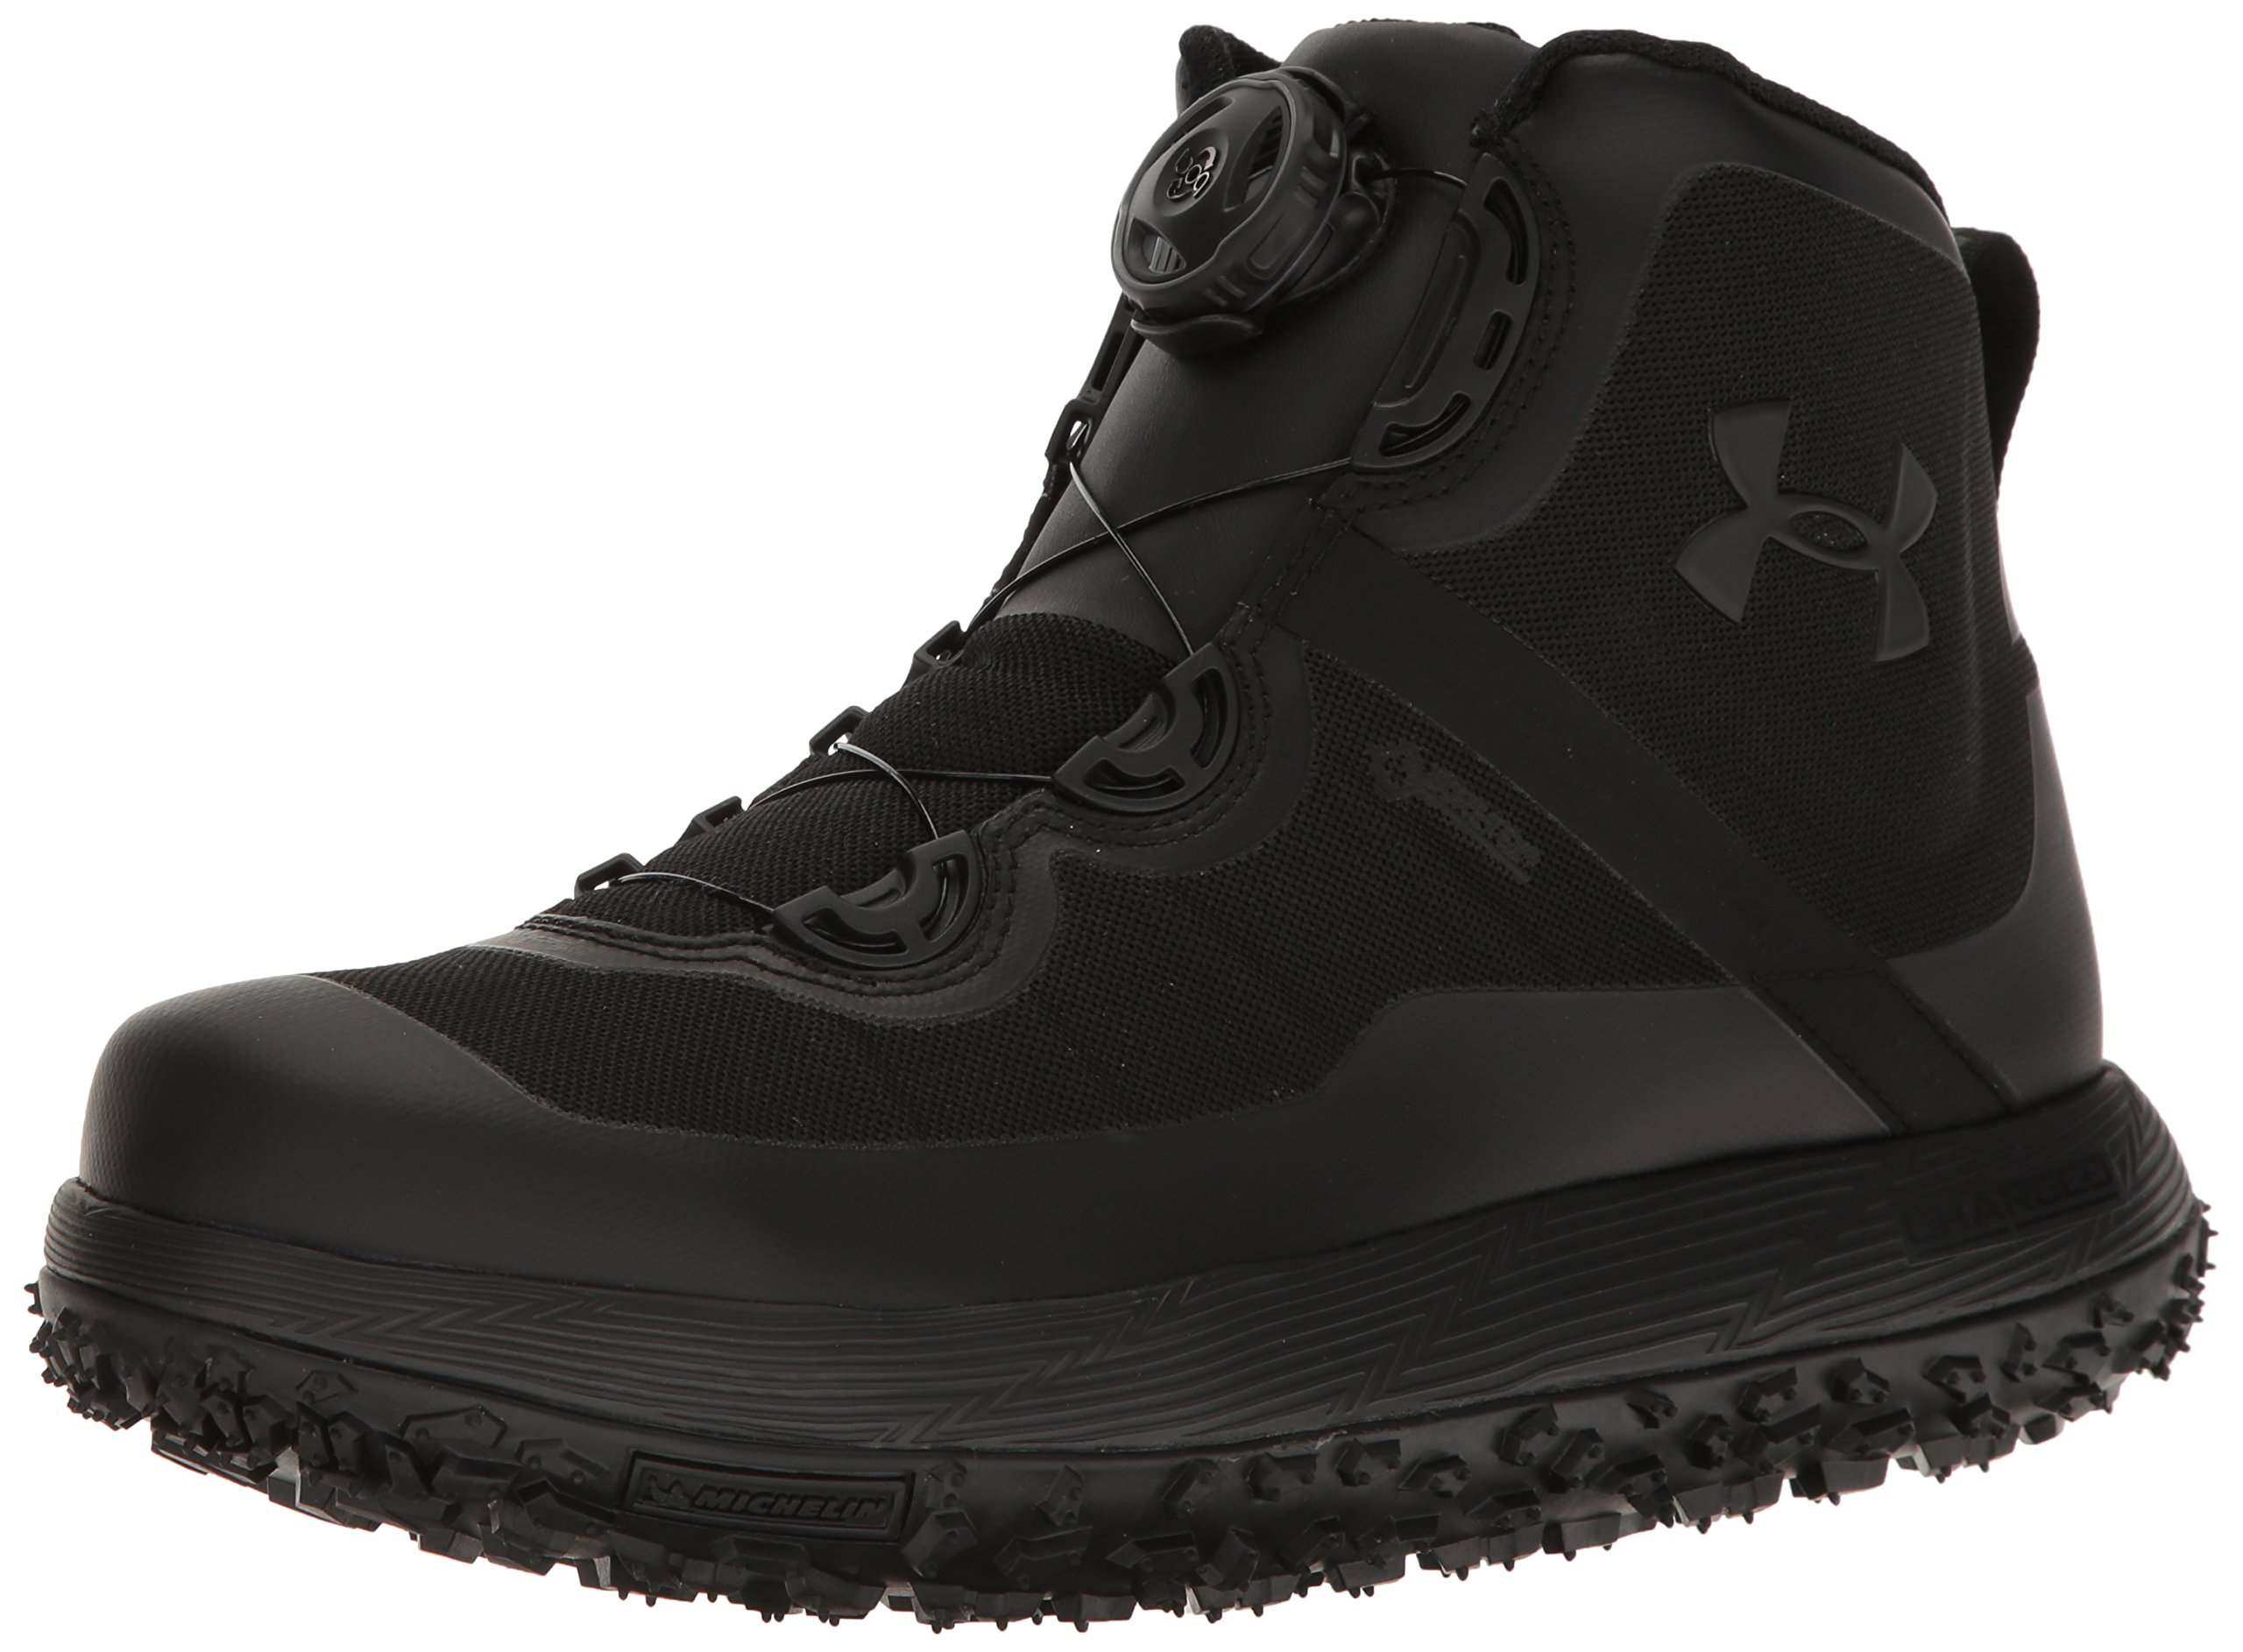 Under Armour Men's Fat Tire GORE-TEX, Black (001)/Black, 11 by Under Armour